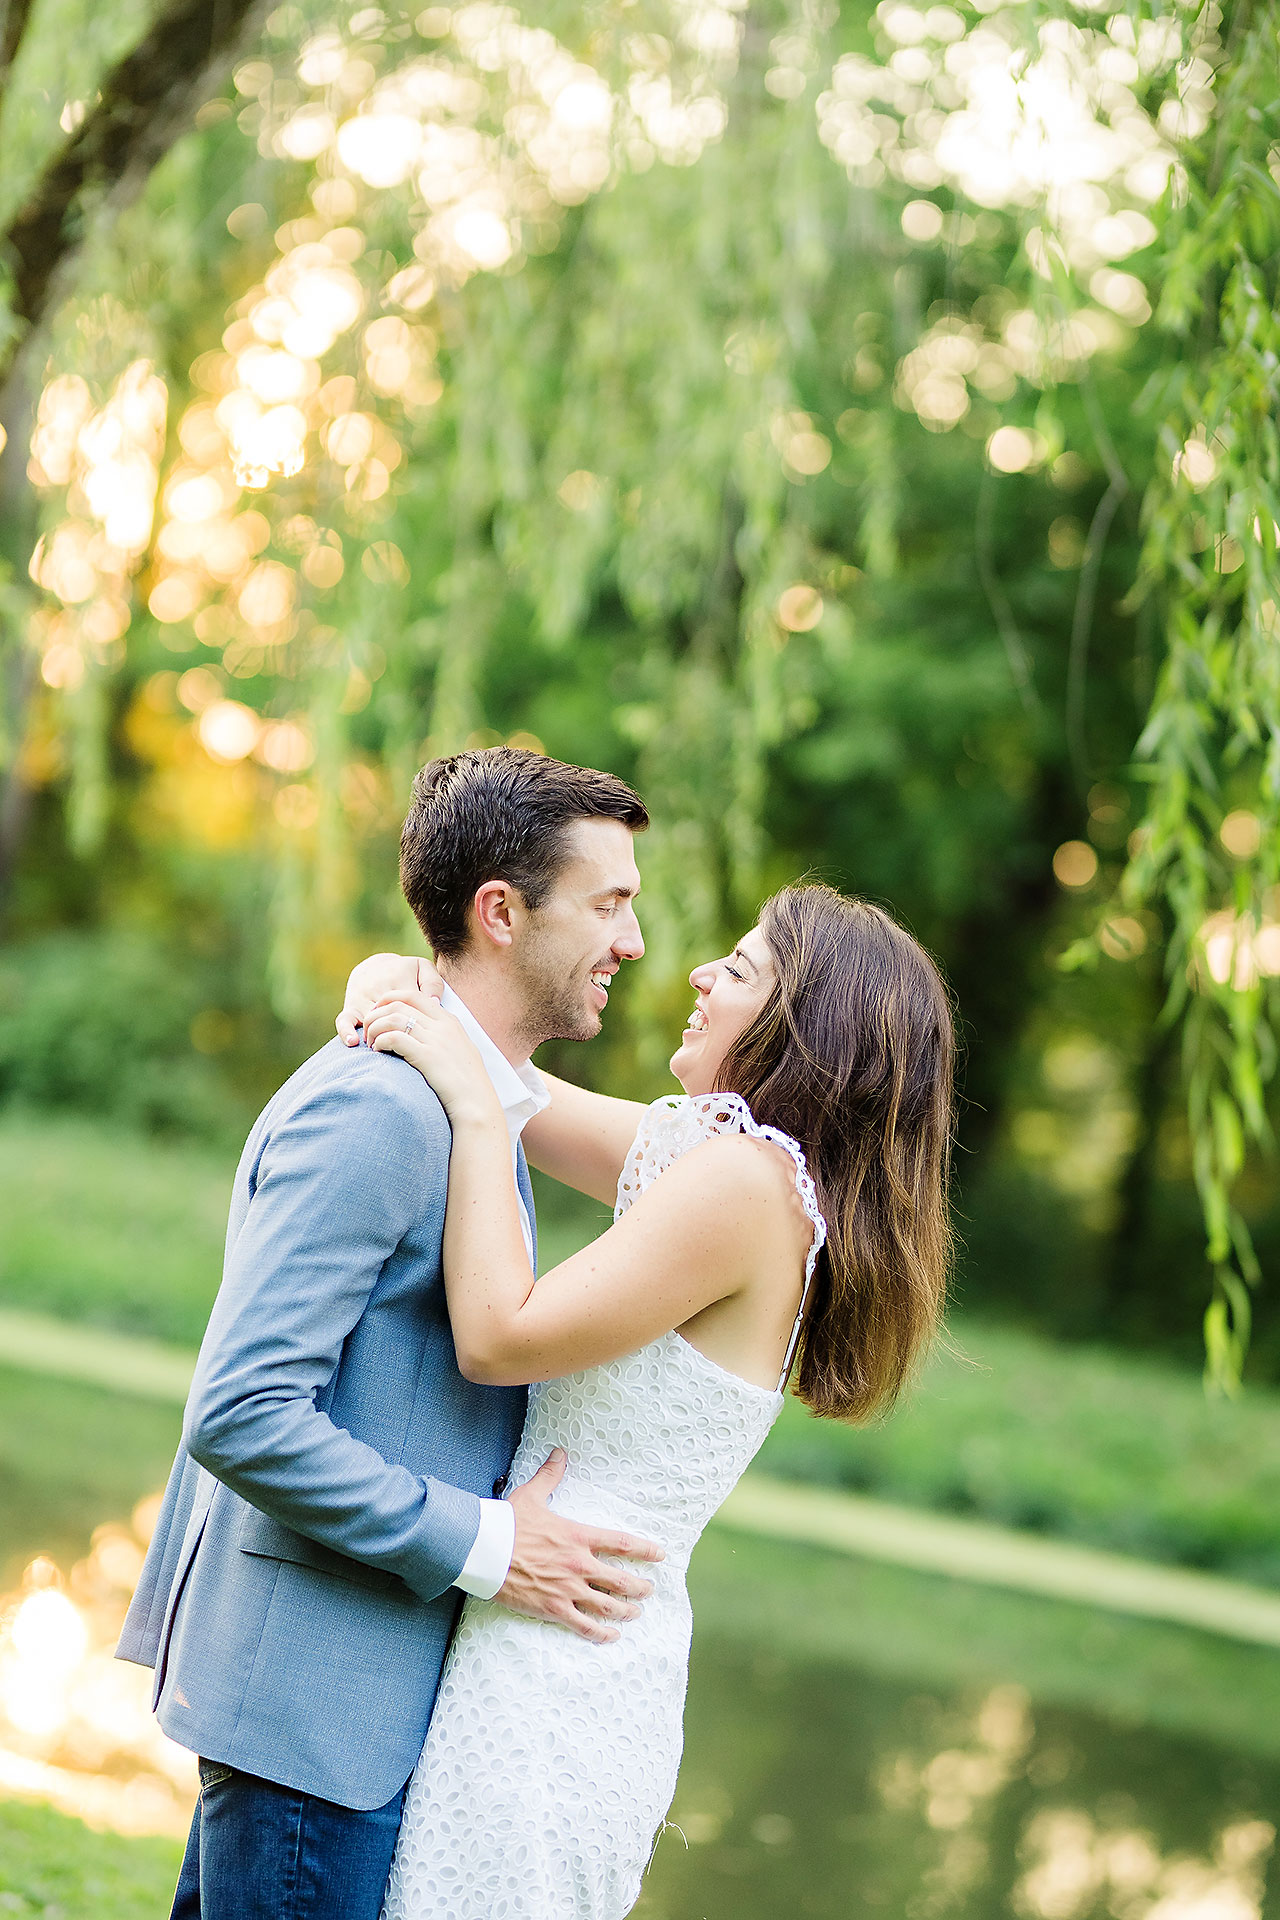 Kate Sawyer Holcomb Gardens Engagement Session 075